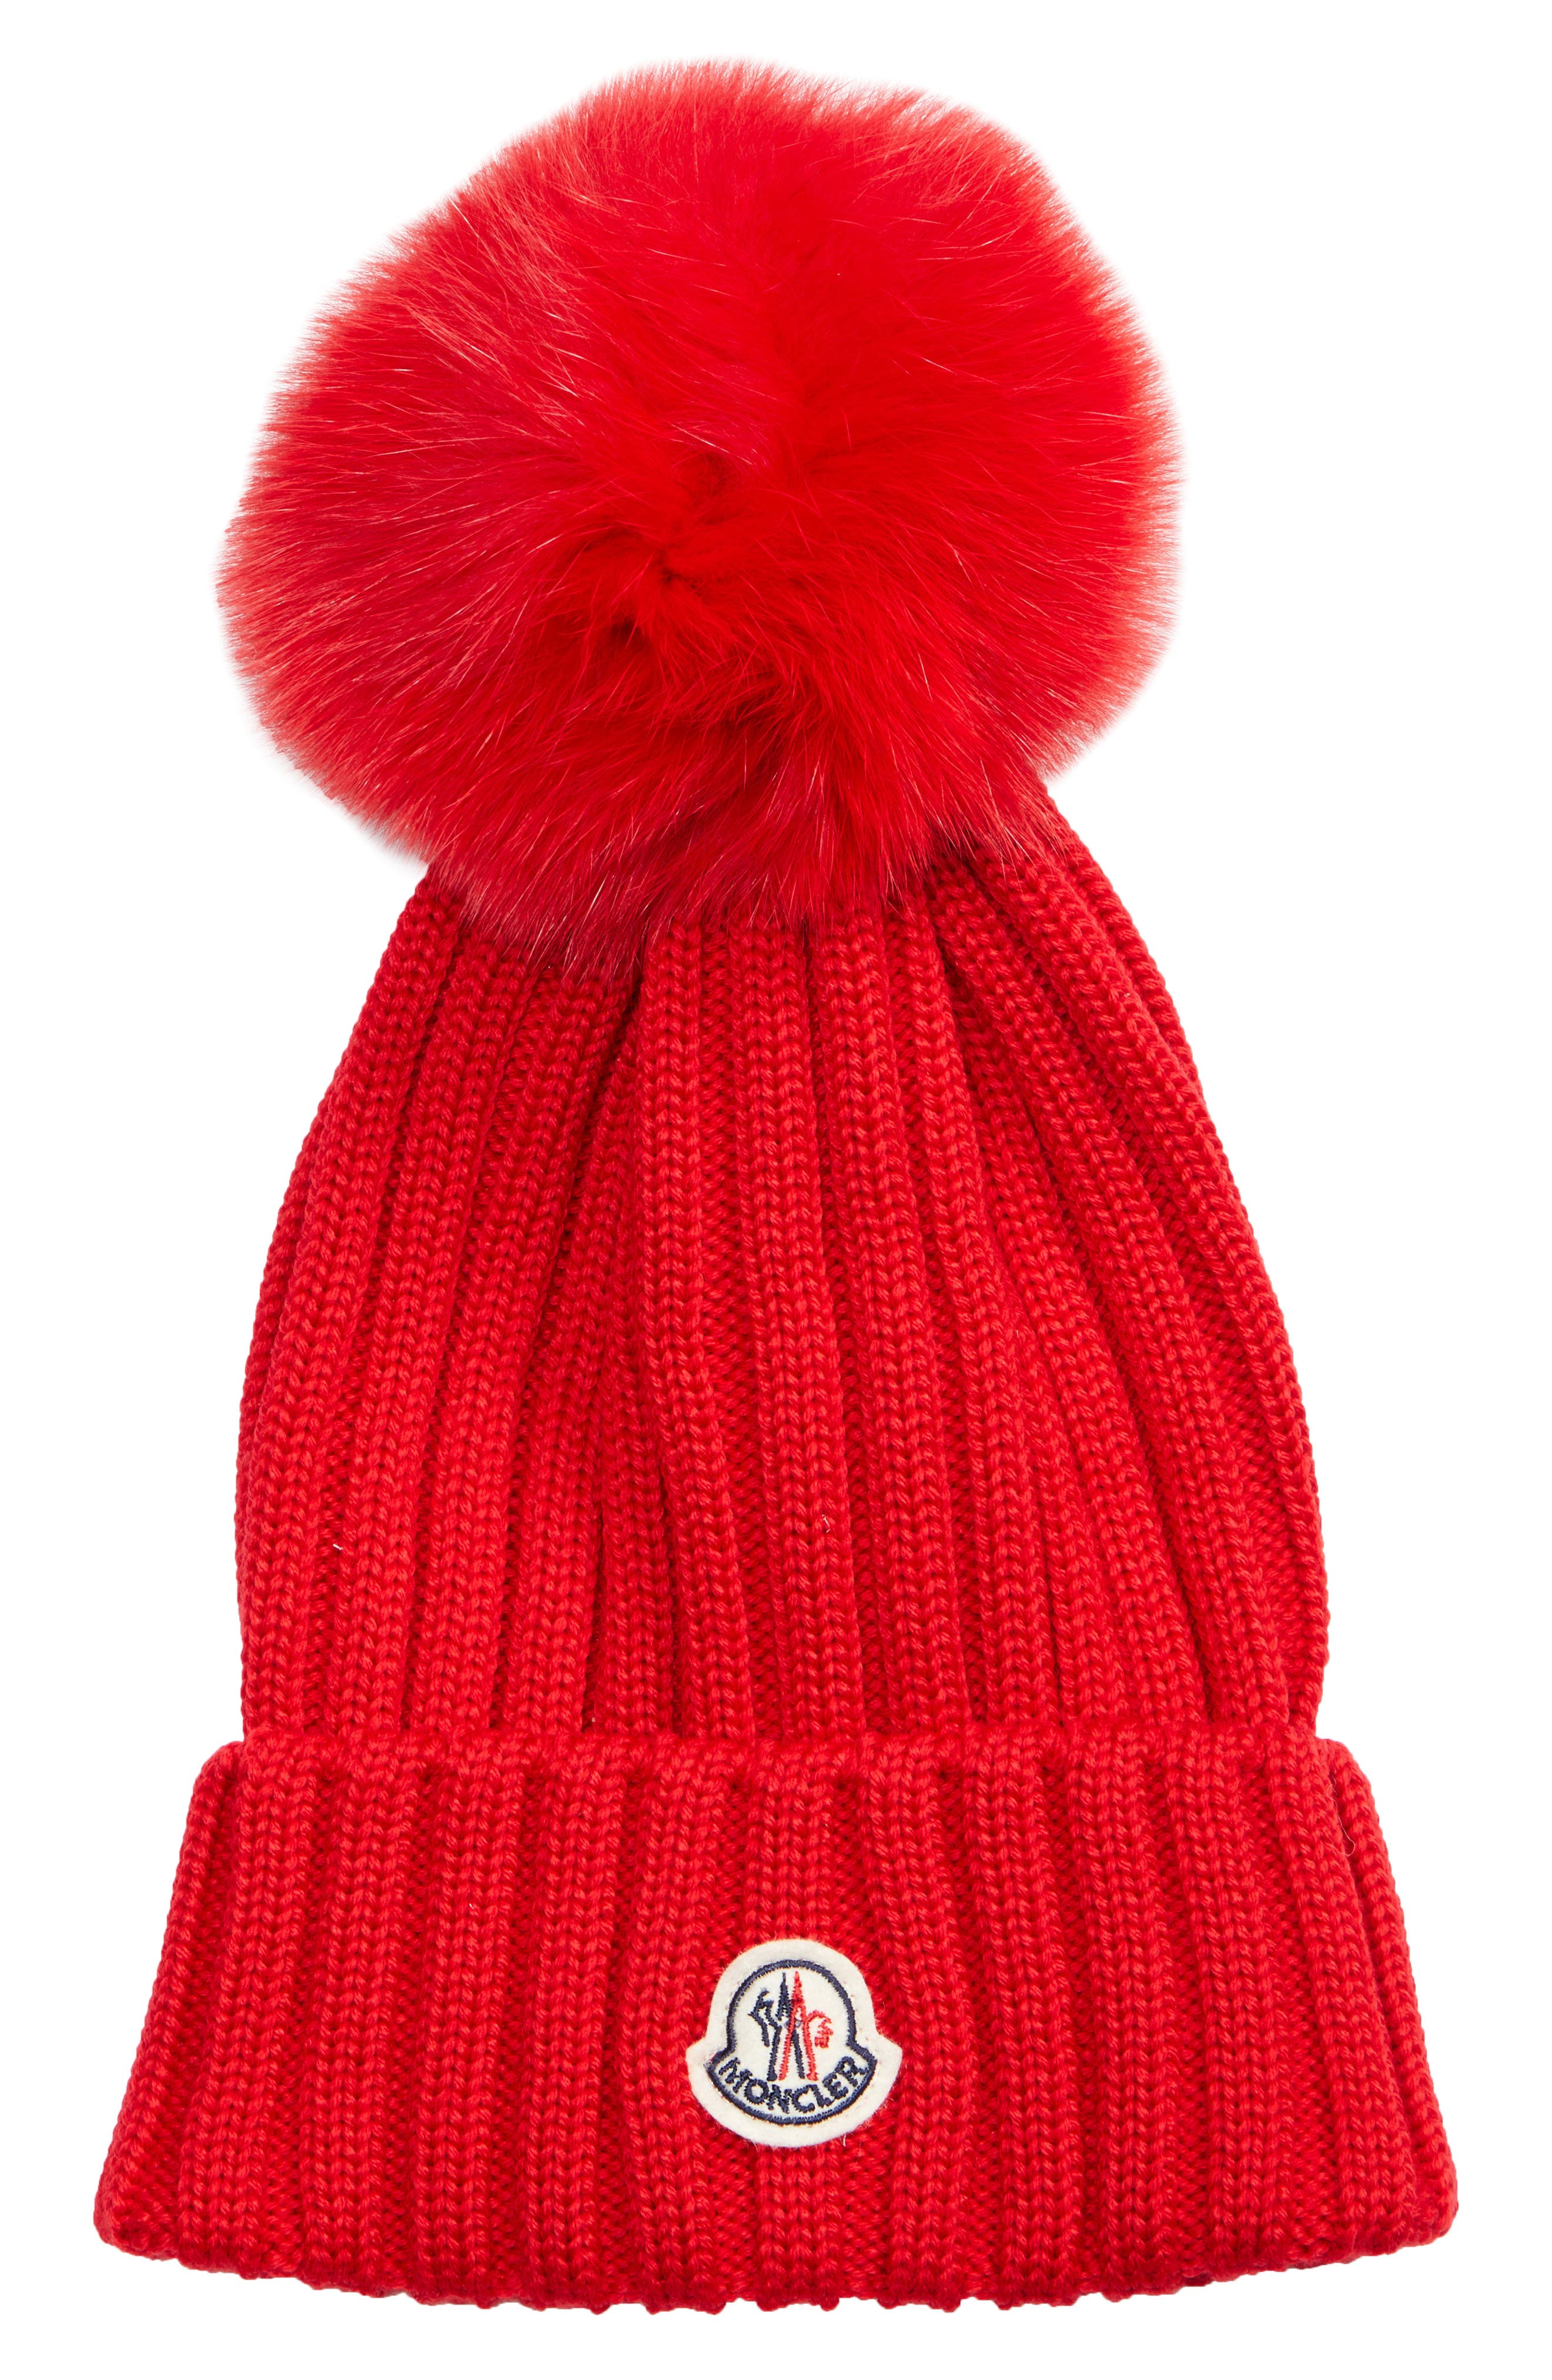 7750ab95fb5 Moncler Hats for Women